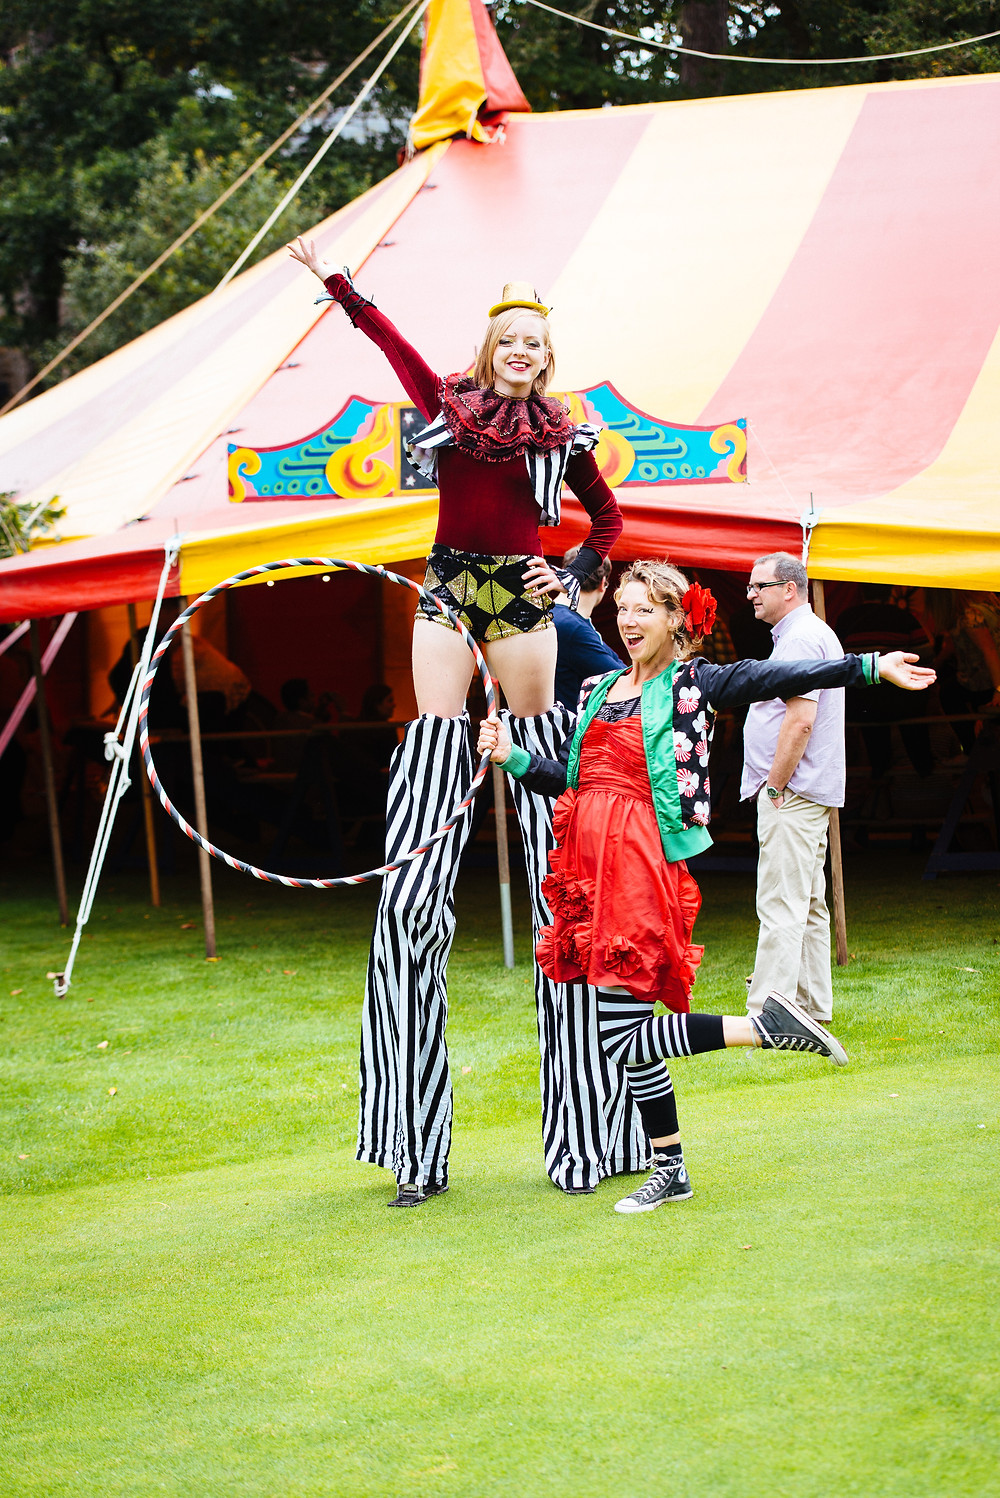 Circus performers for your event